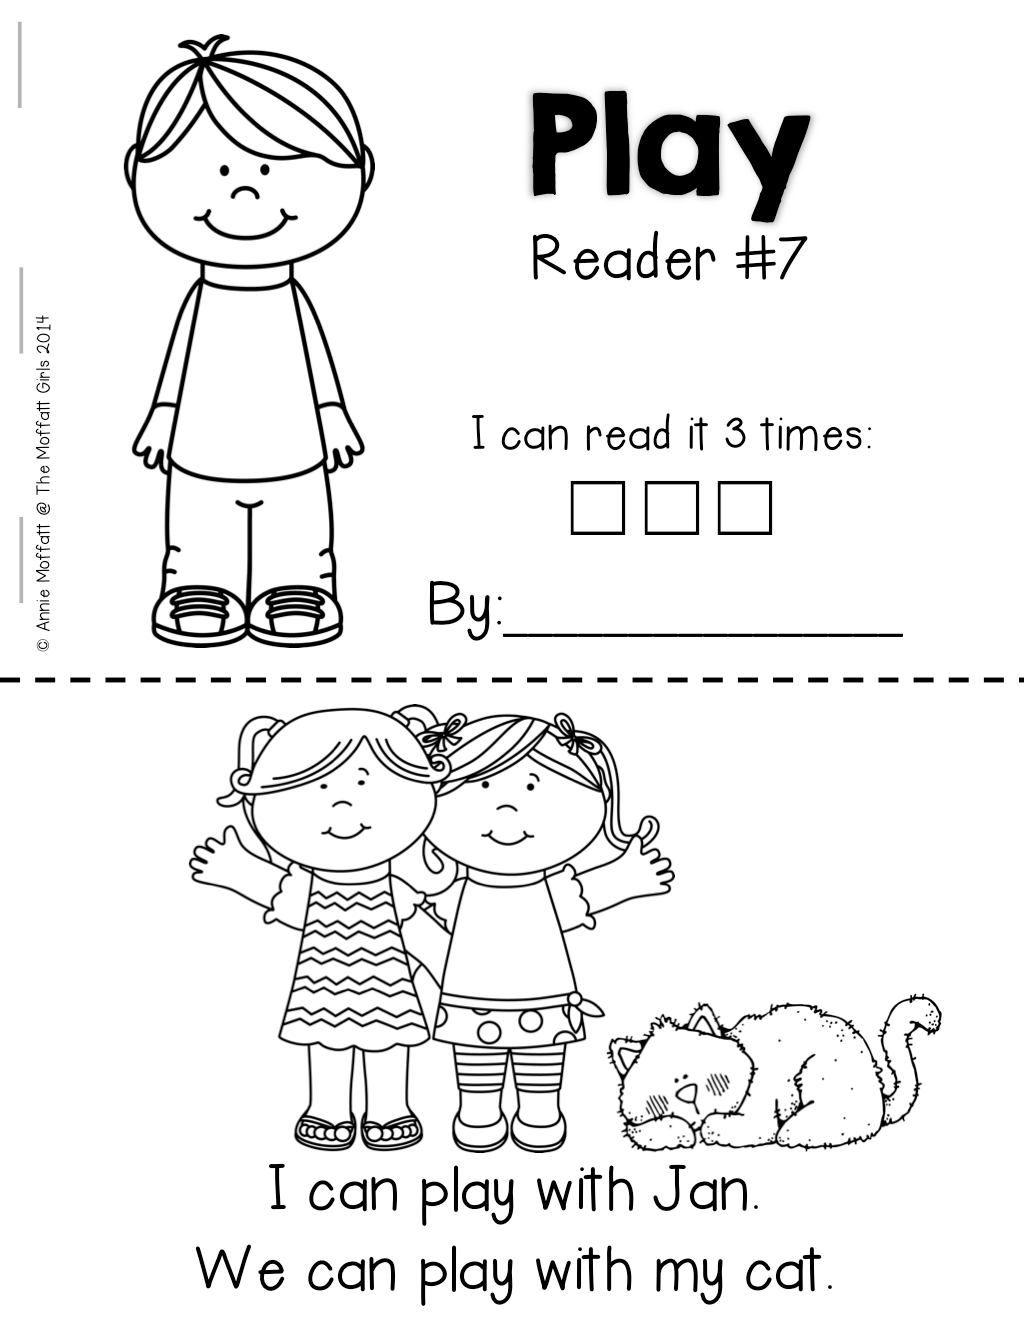 Emergent Readers That Help Build Fluency And Confidence